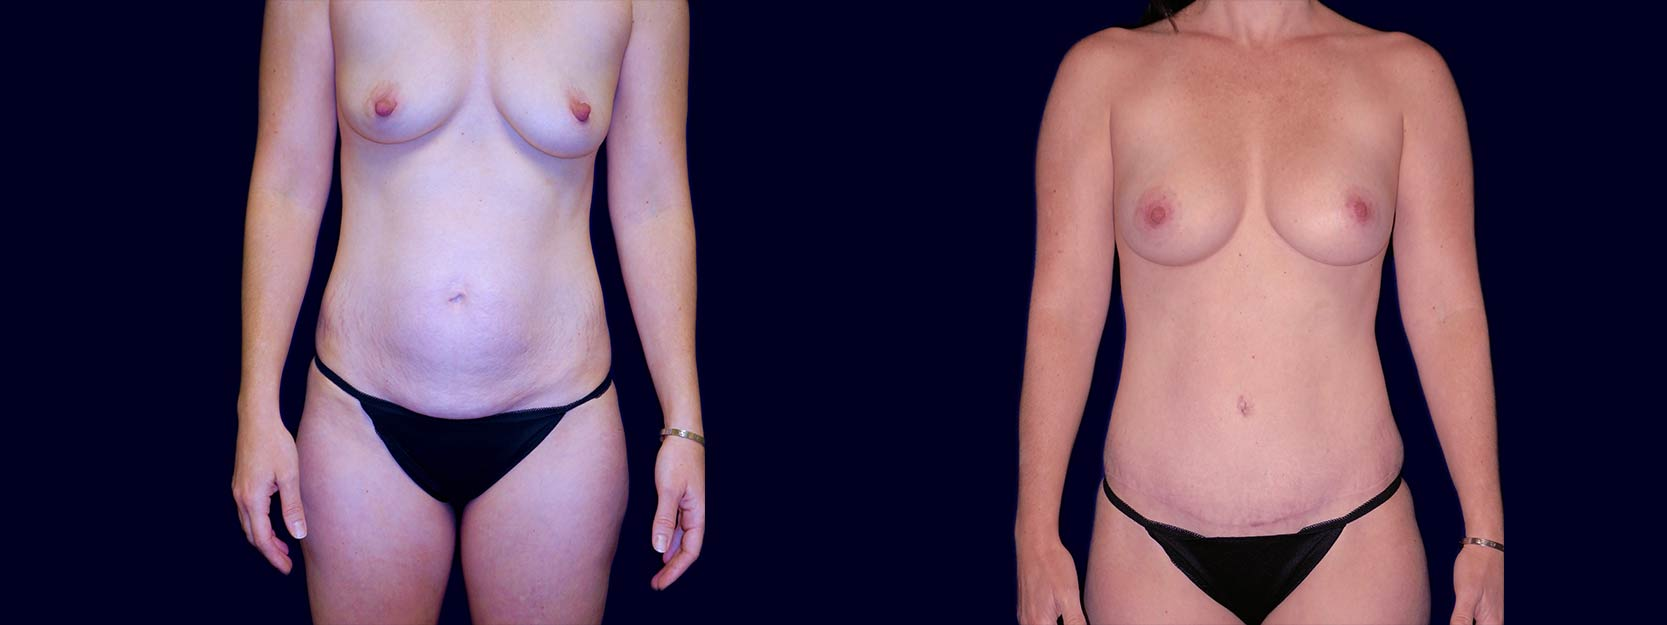 Frontal View - Breast Augmentation and Tummy Tuck After Pregnancy